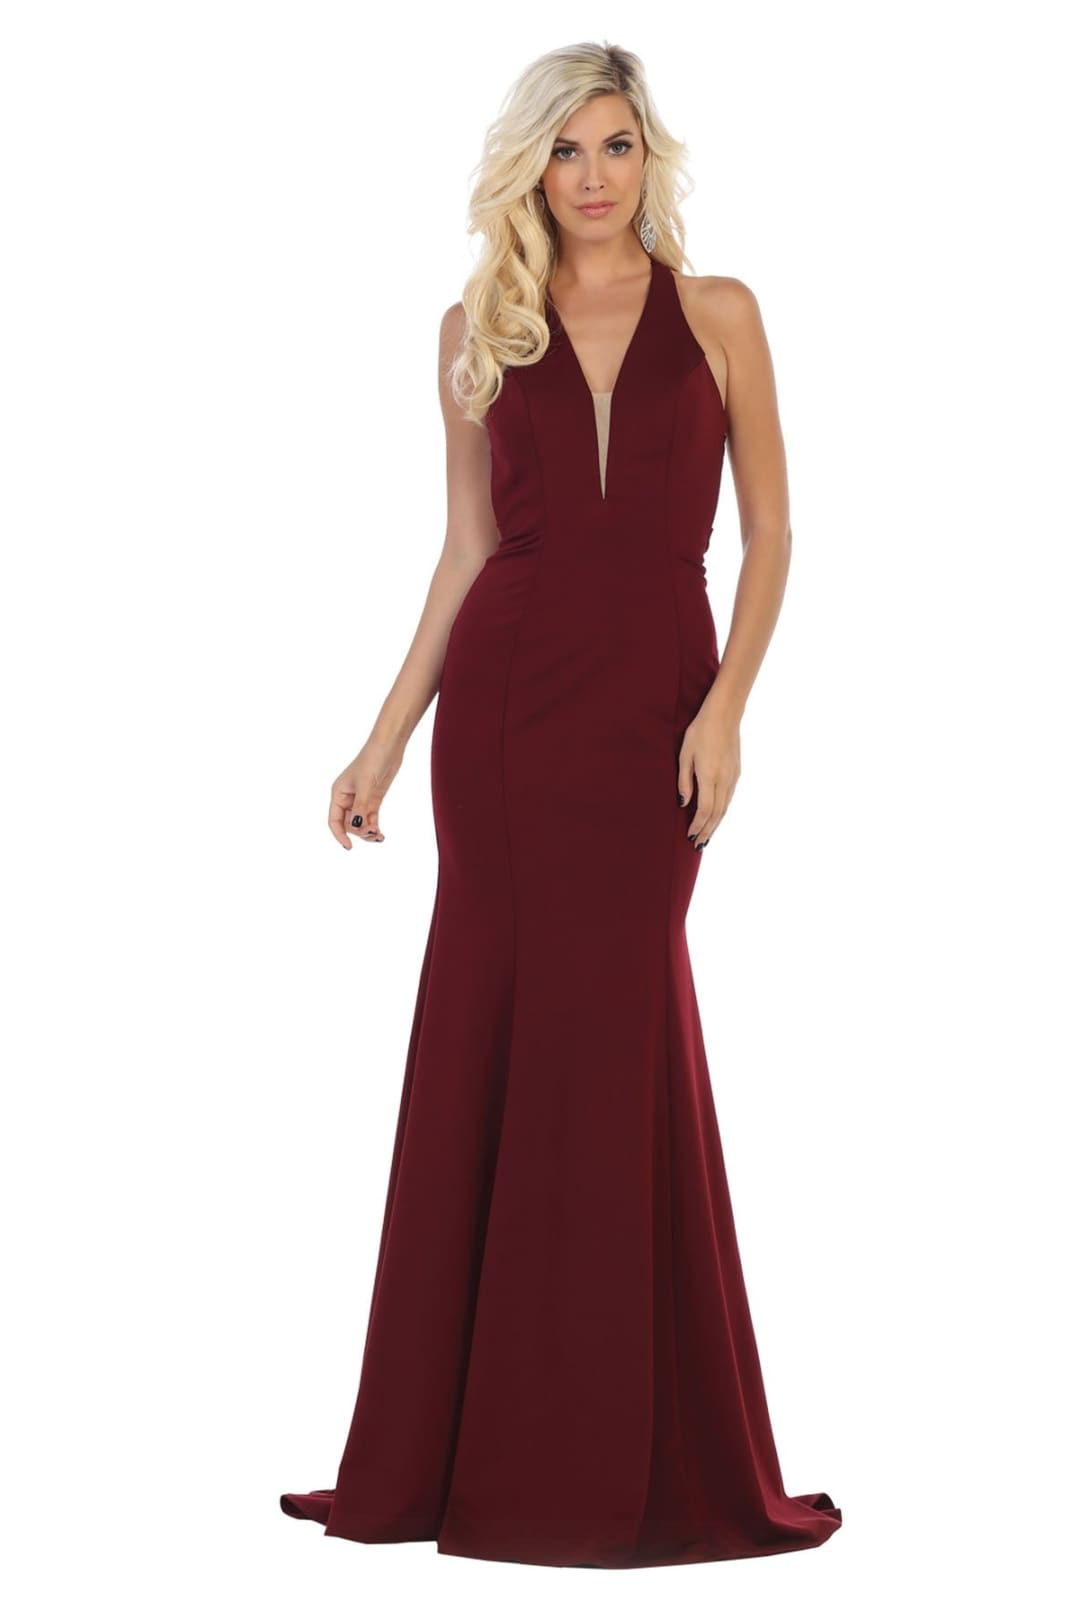 V-Neckline Prom Dress - Burgundy / 2